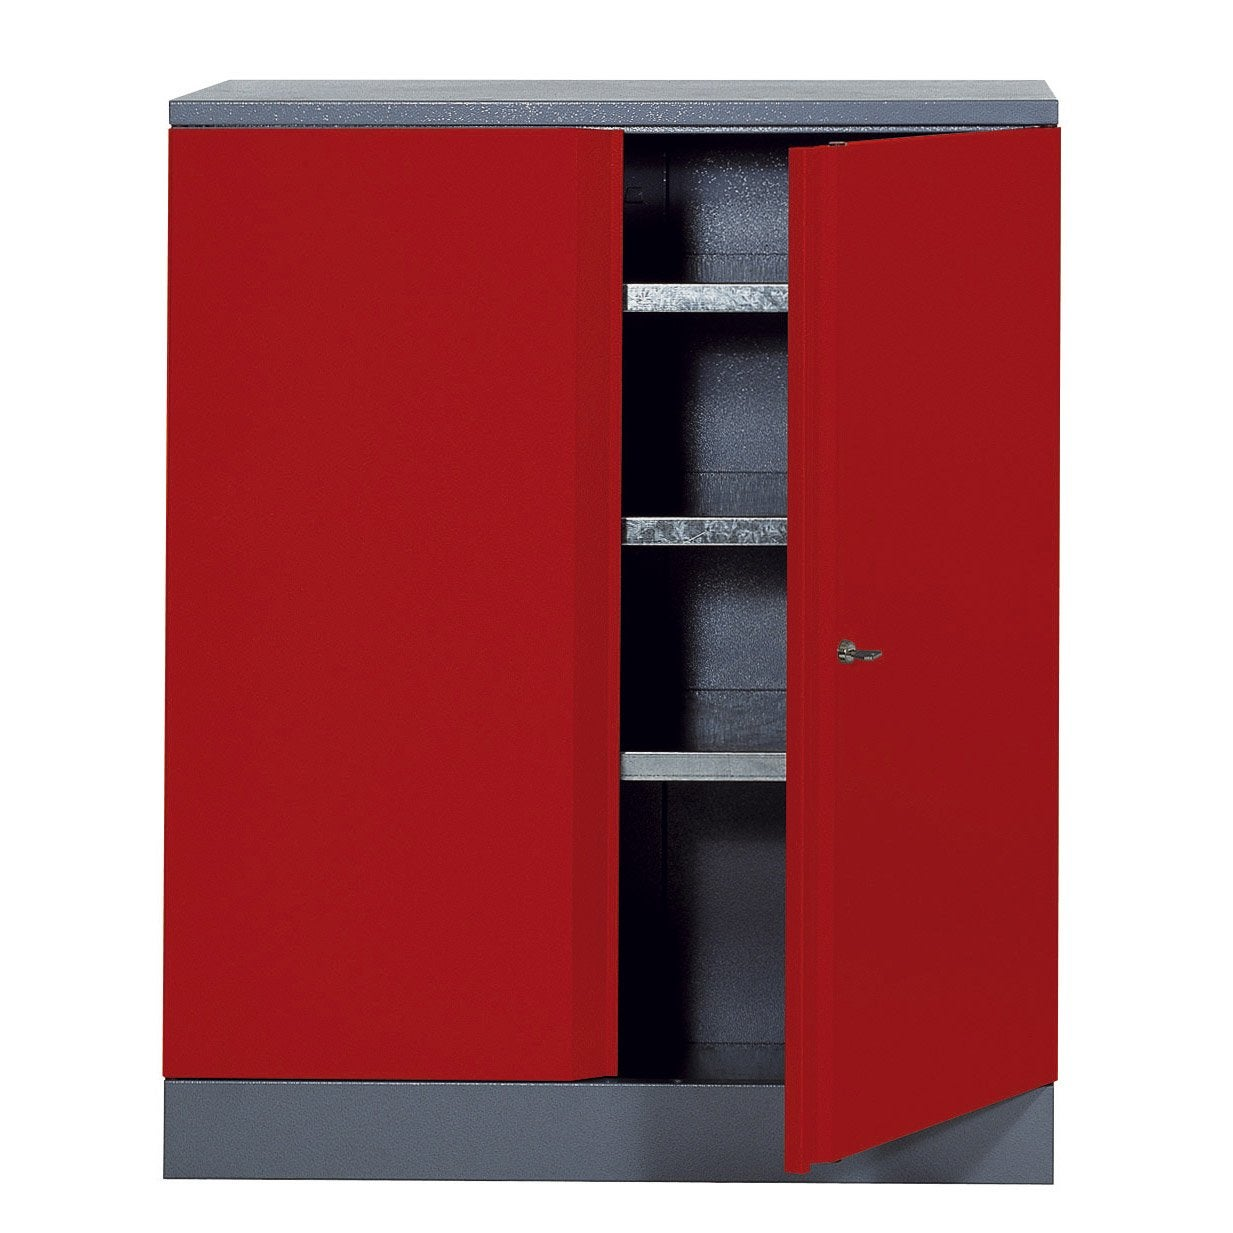 armoire de rangement en m tal rouge kupper 91 cm 1 porte leroy merlin. Black Bedroom Furniture Sets. Home Design Ideas